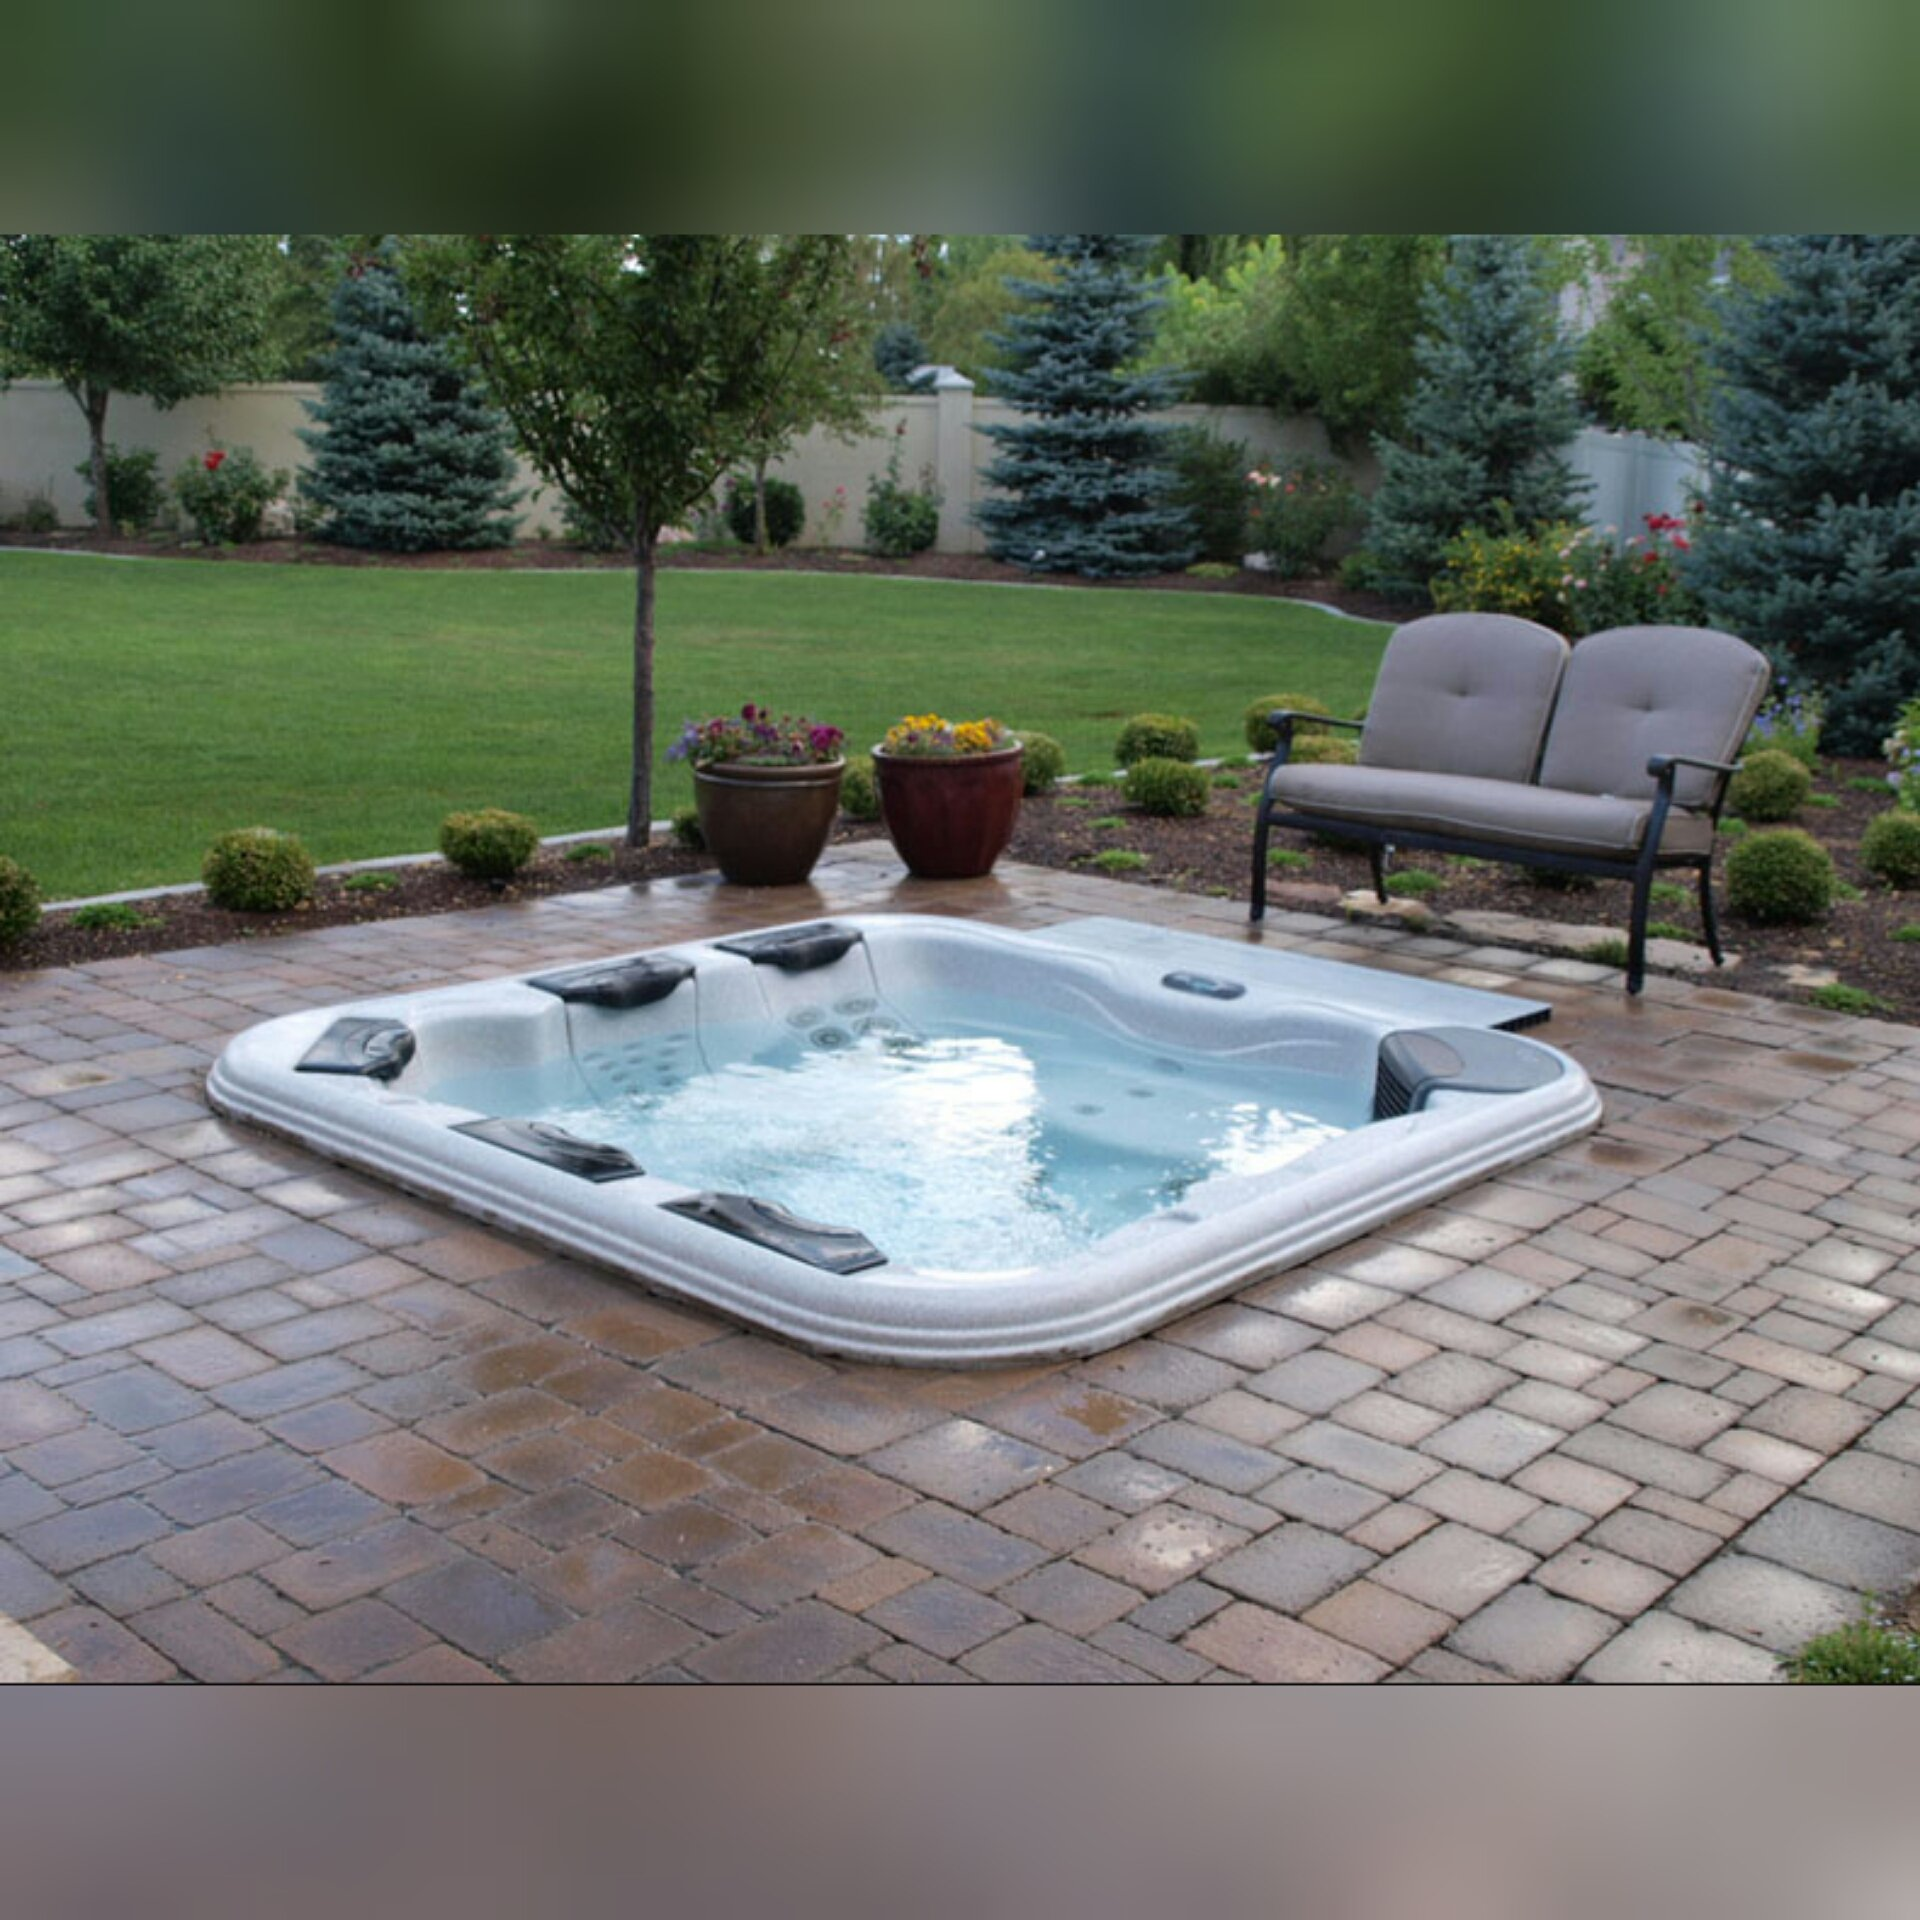 Inbuilt hot tub